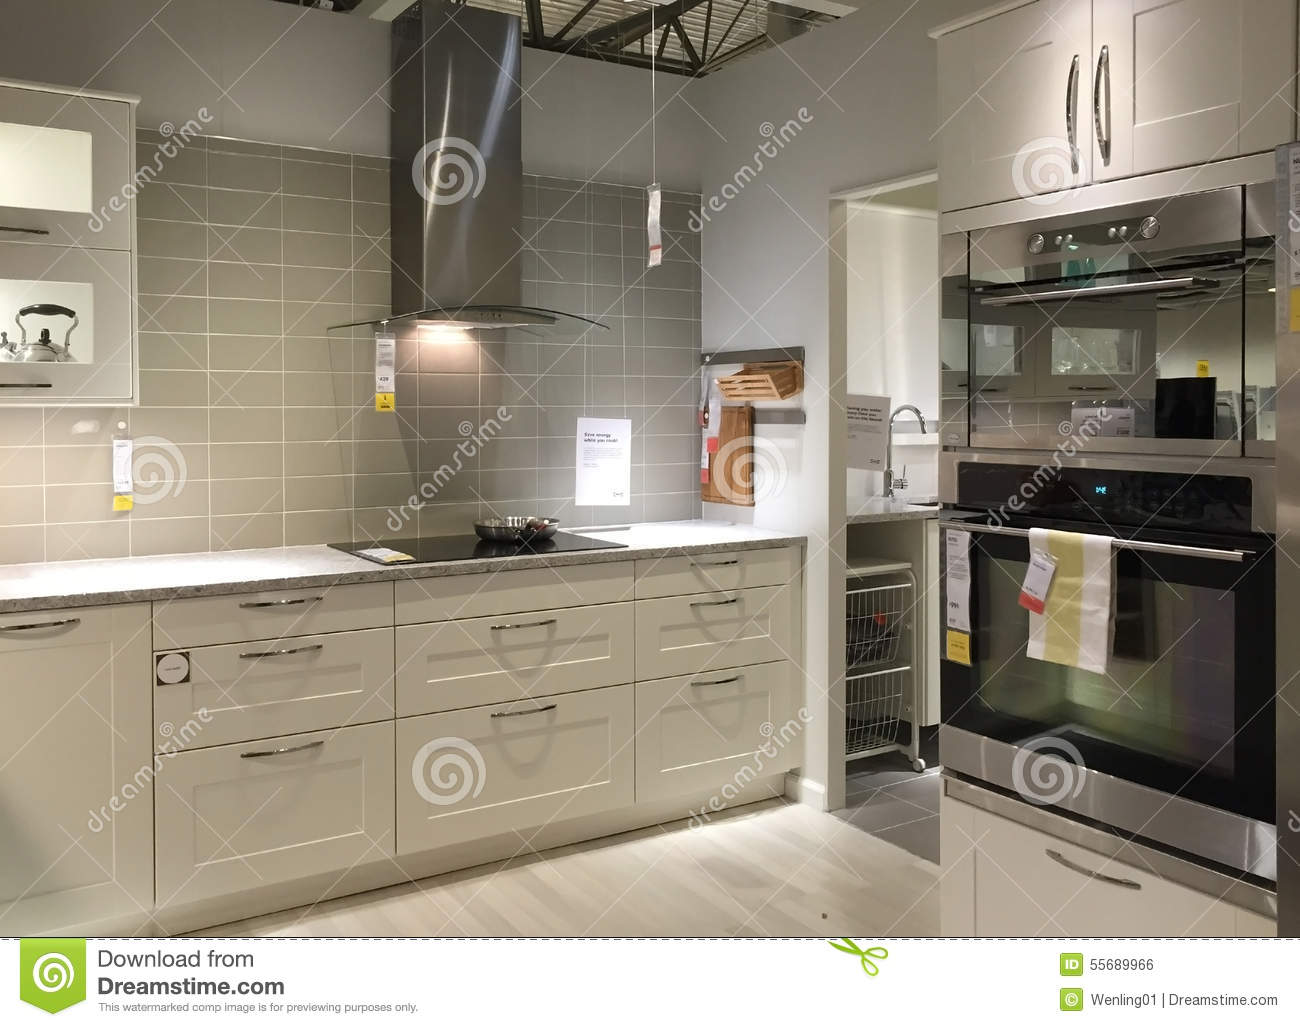 Clean And Neat Modern Kitchen Background Editorial Photo Image 55689966